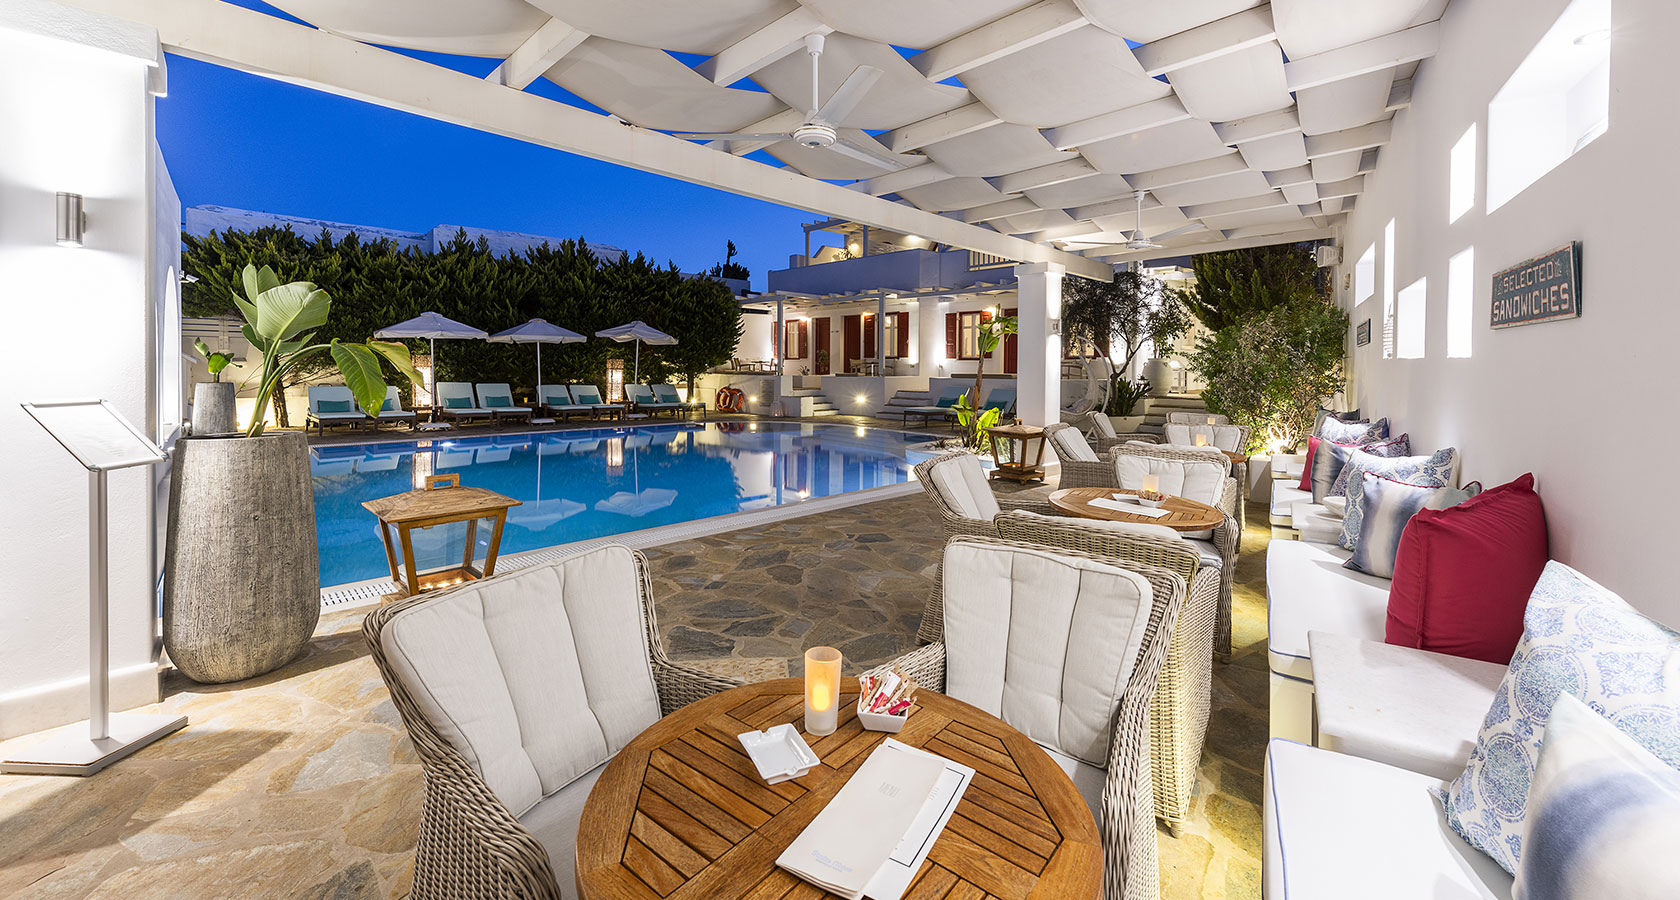 The pool of Stelia Mare Hotel in Naoussa Paros